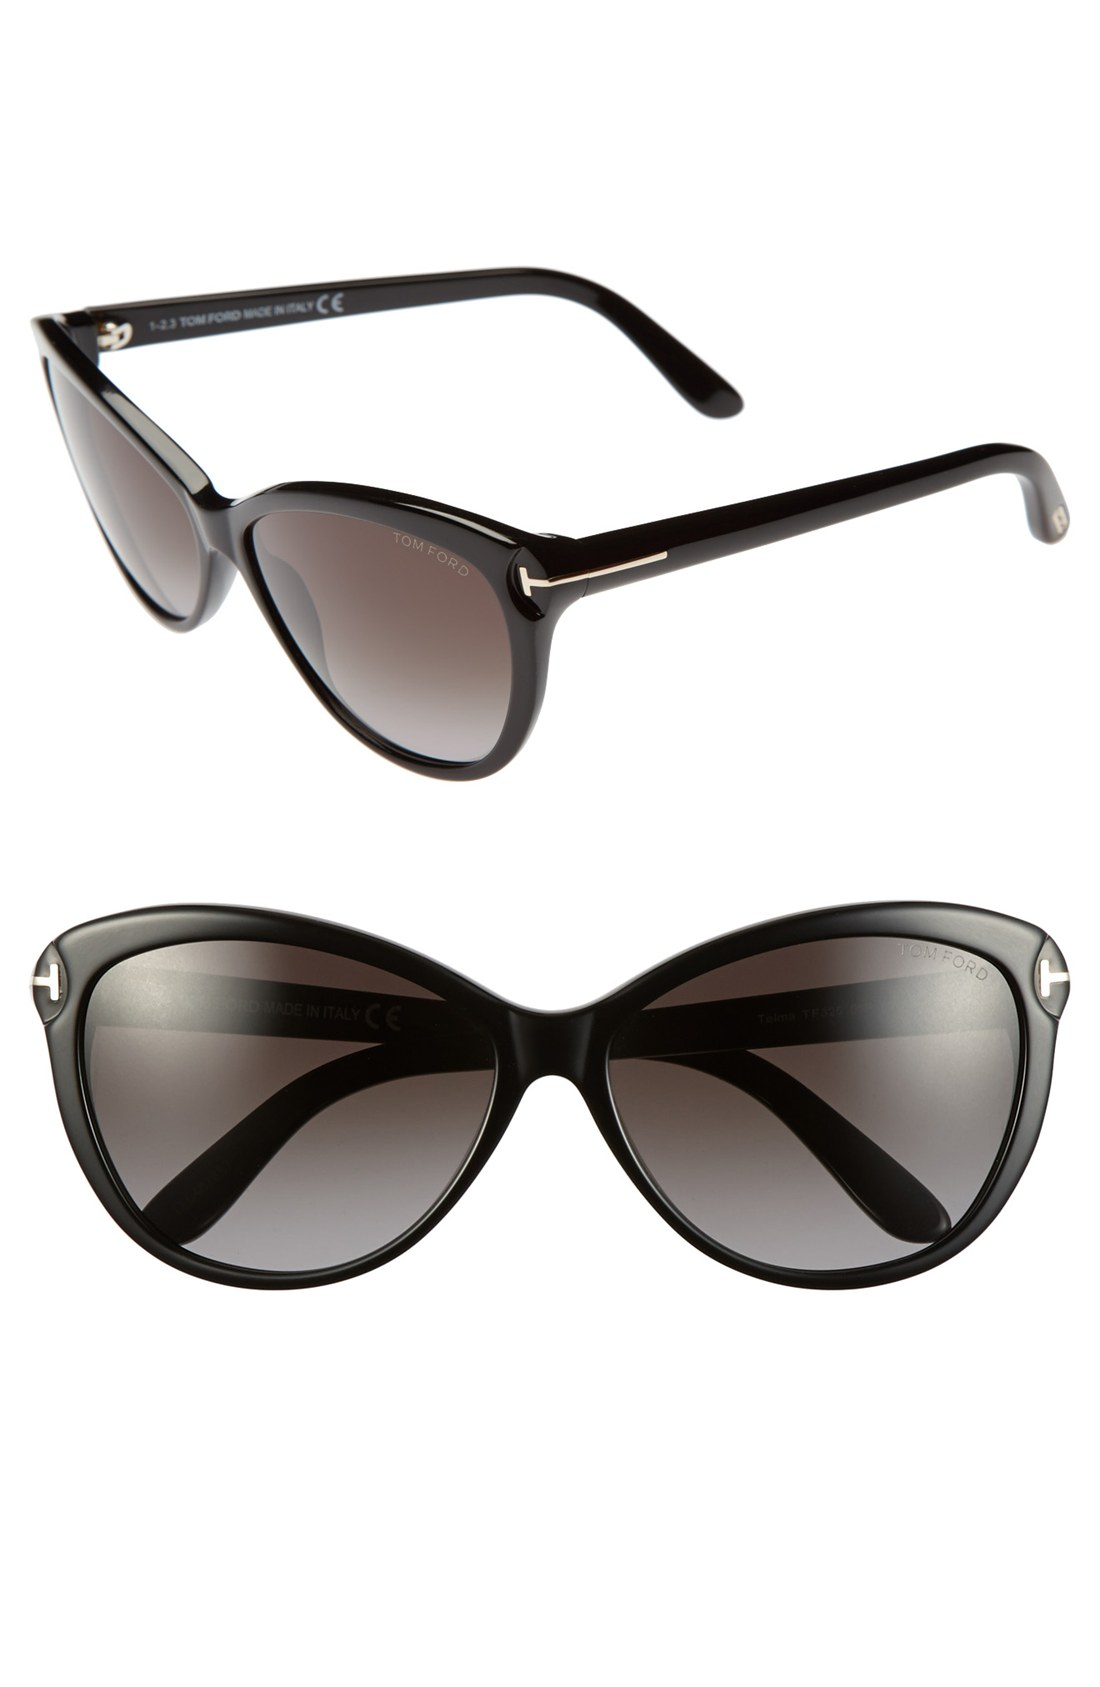 tom ford 39 telma 39 60mm cat eye sunglasses in black shiny black lyst. Cars Review. Best American Auto & Cars Review